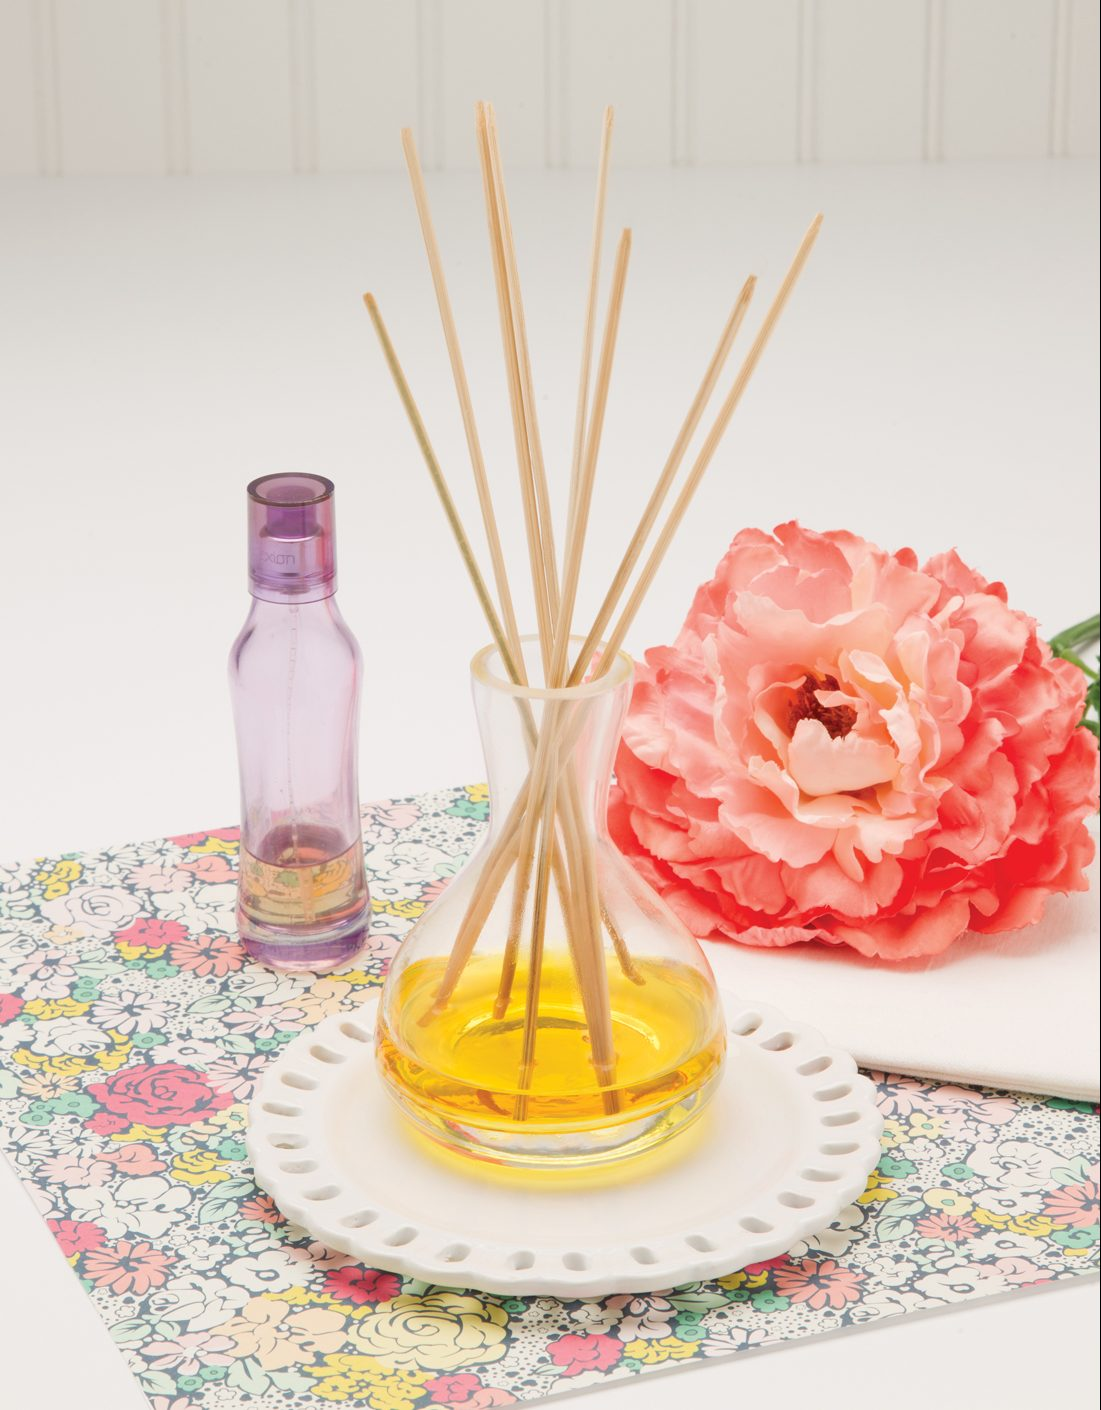 Beautifully displayed reed diffuser with light and bright colors and a coral colored rose.